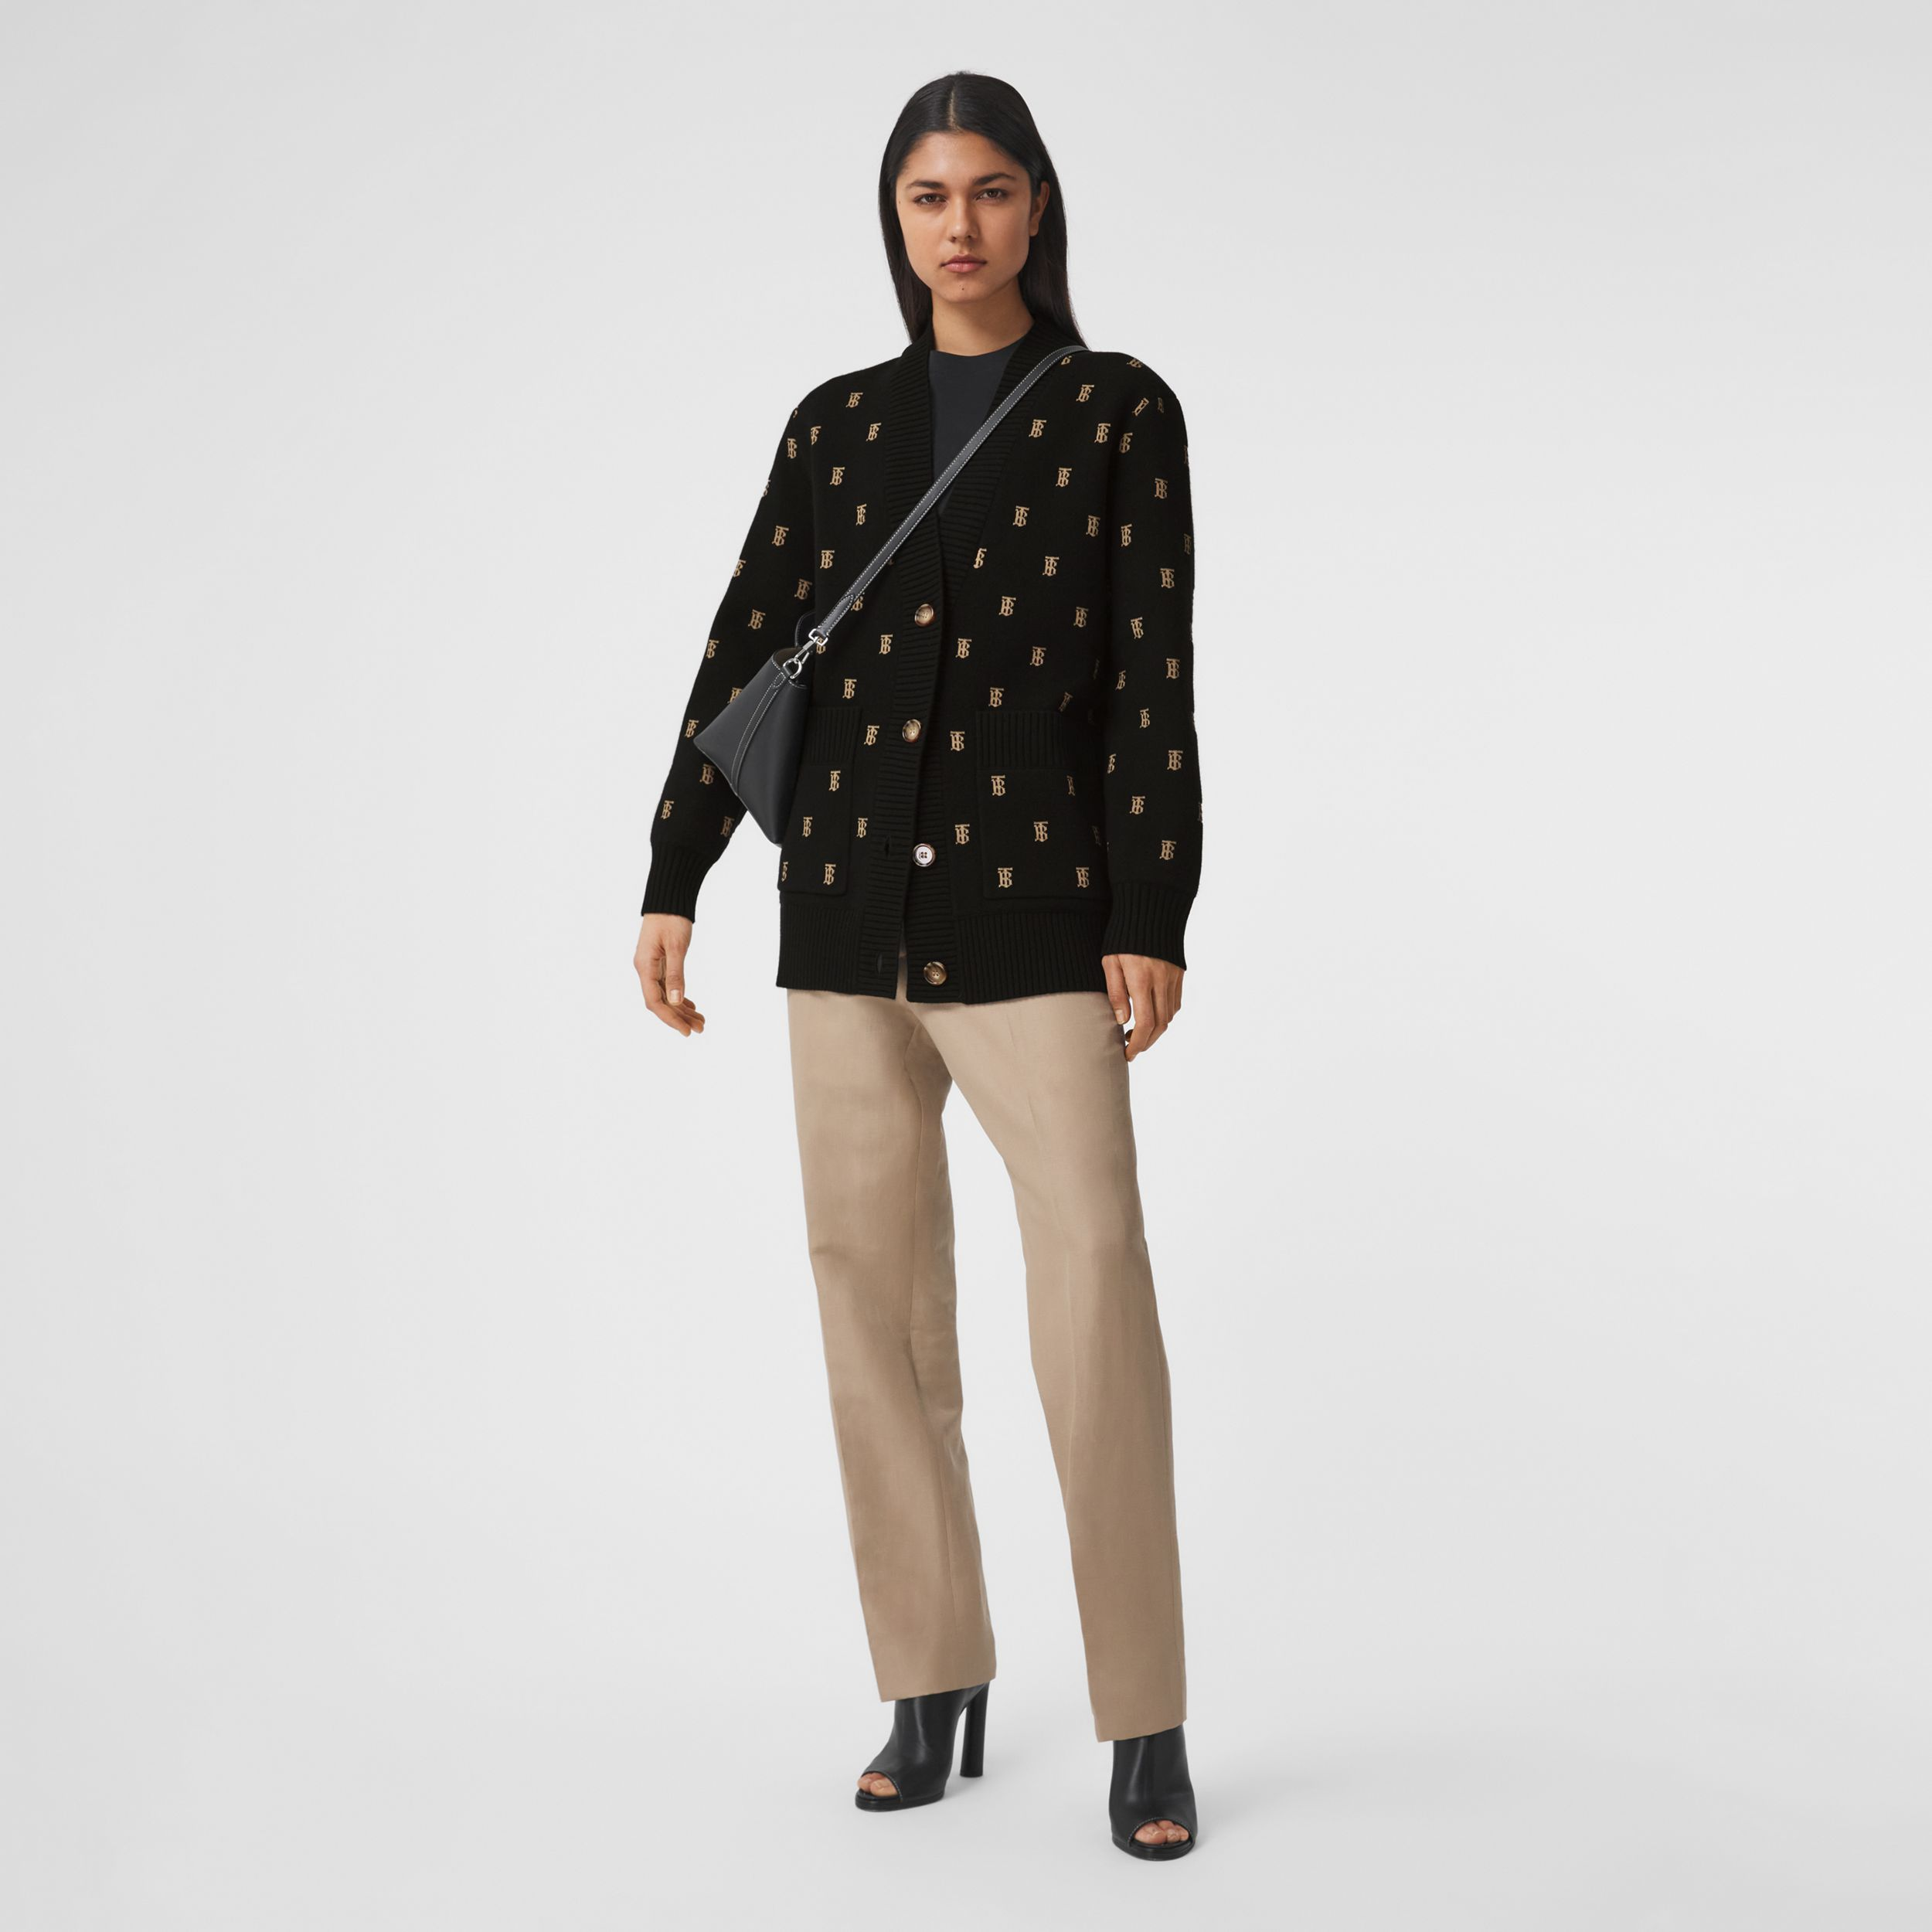 Monogram Wool Cashmere Blend Oversized Cardigan in Black - Women | Burberry - 1